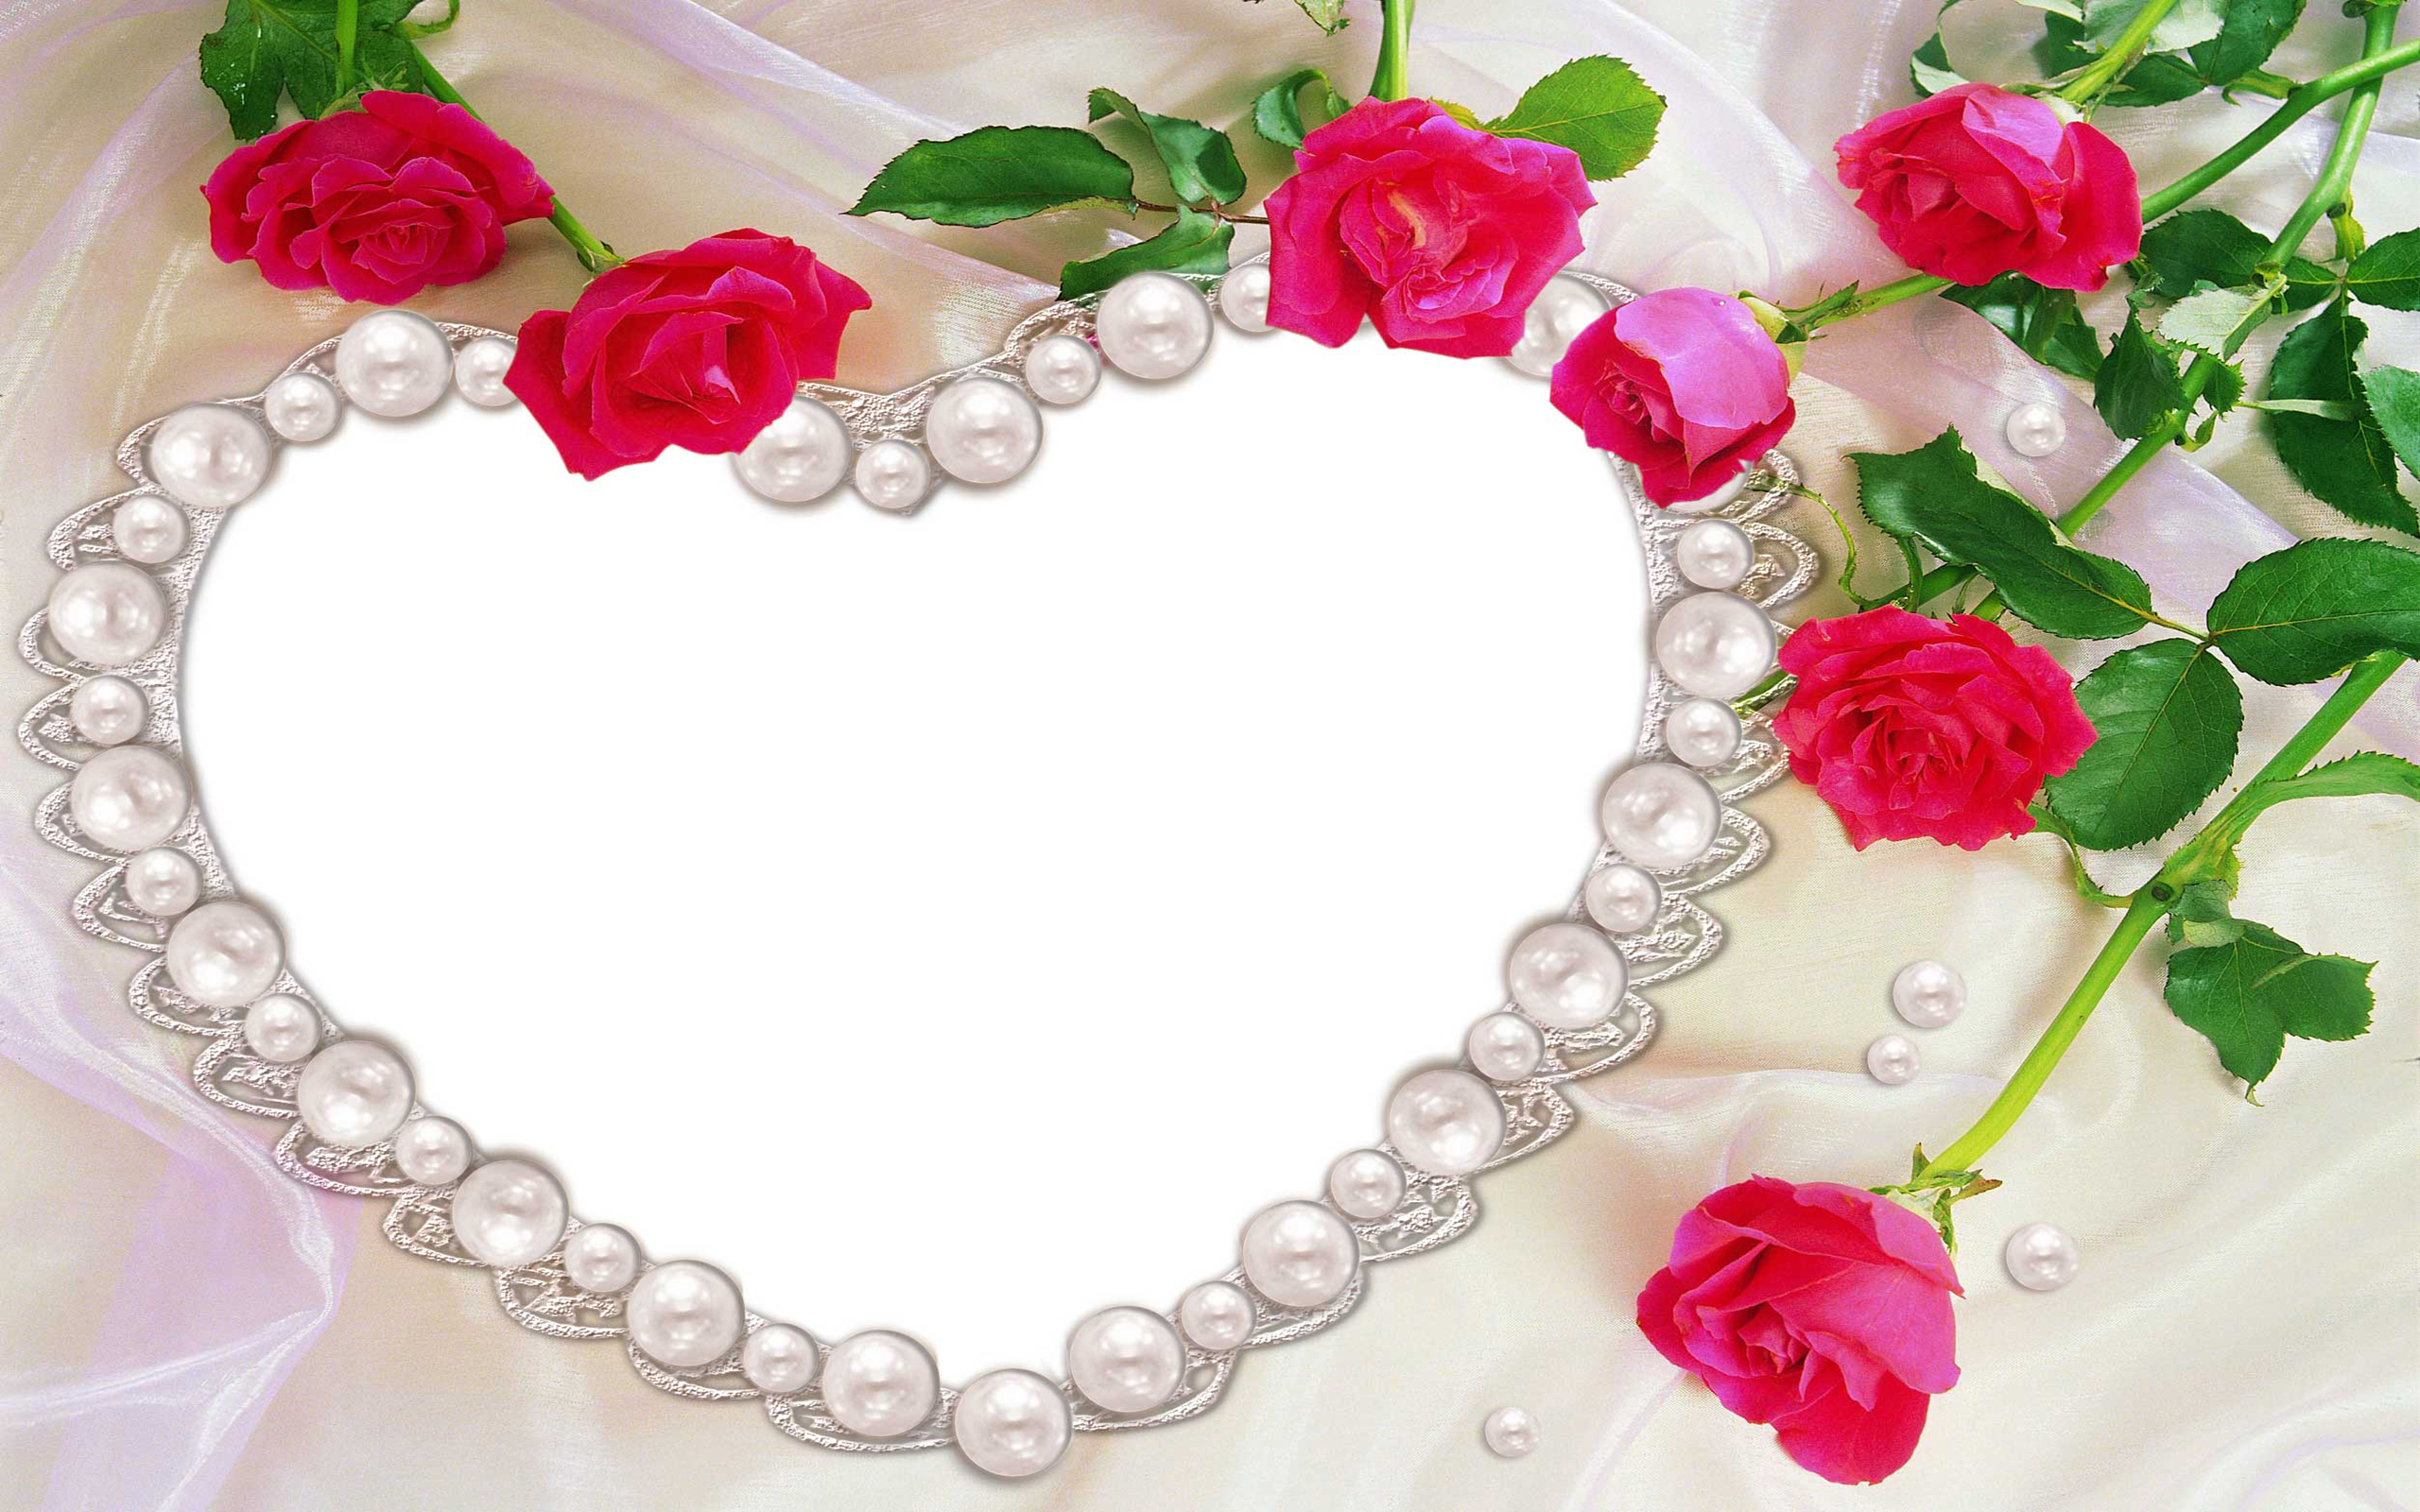 Heart Shaped Pearl Necklace And Pink Roses Full HD Wallpaper